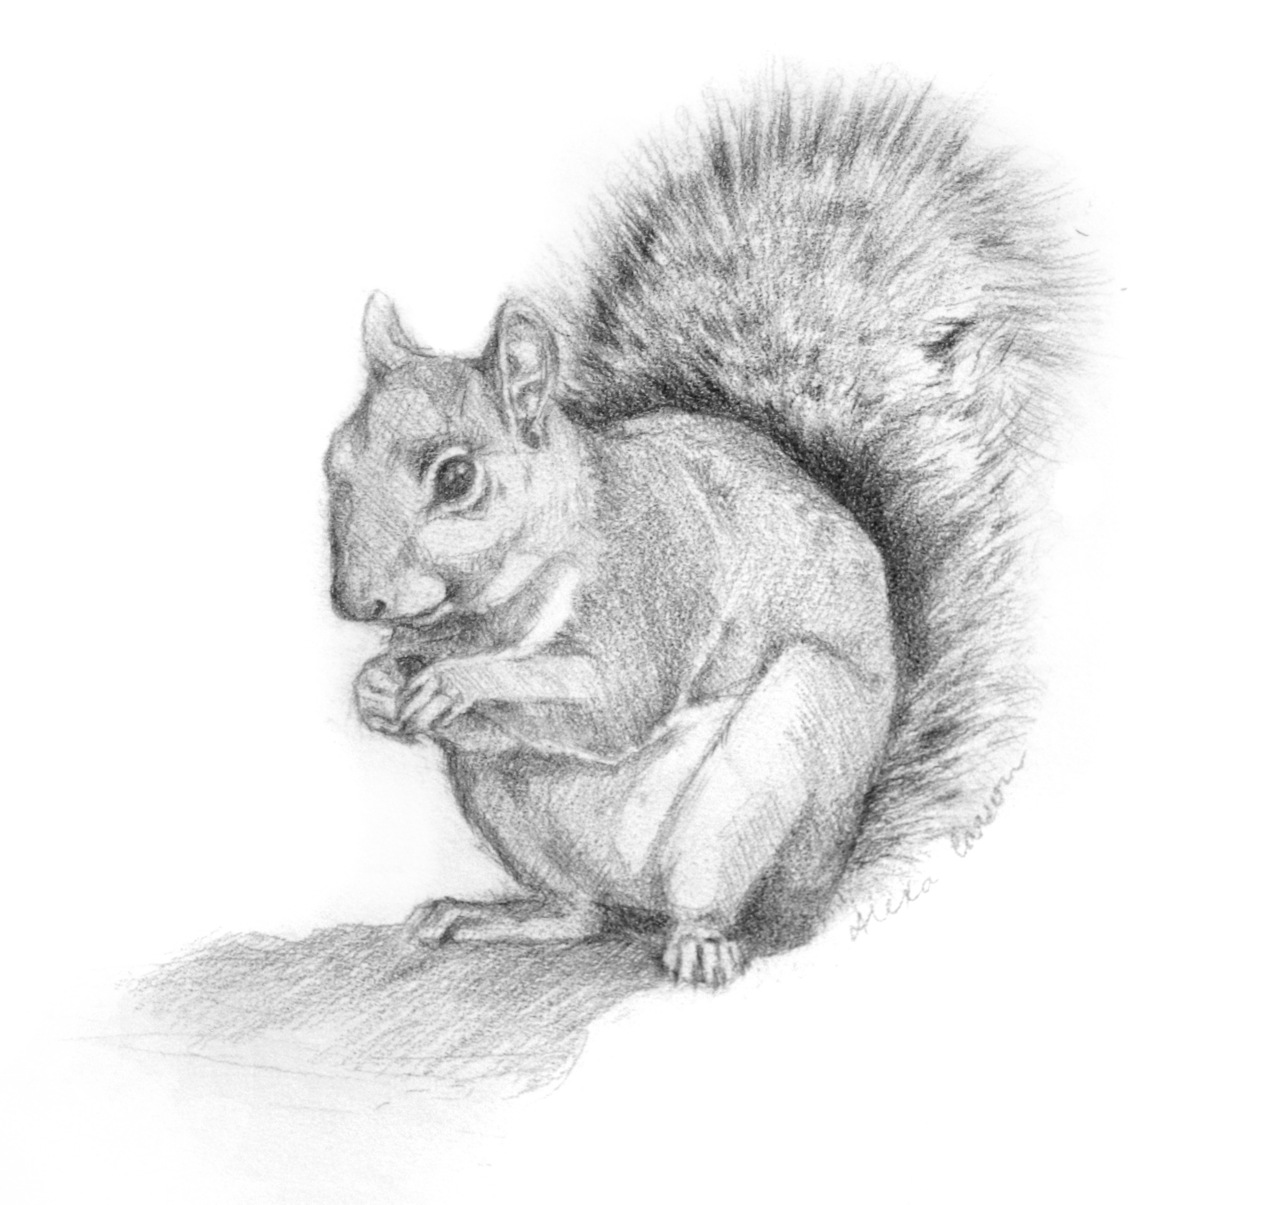 This is a little pencil drawing I did for a friend of mine who is a wildlife rehabilitator. She is is leaving the wildlife center where I work and this is her going away present.   Squirrels. They are crazy little buggers. Cute to look at from far away, but nasty to get out of a cage. Give me an eagle or an opossum any day! Boy do I have scars and stories to go along with them. Fun times :).